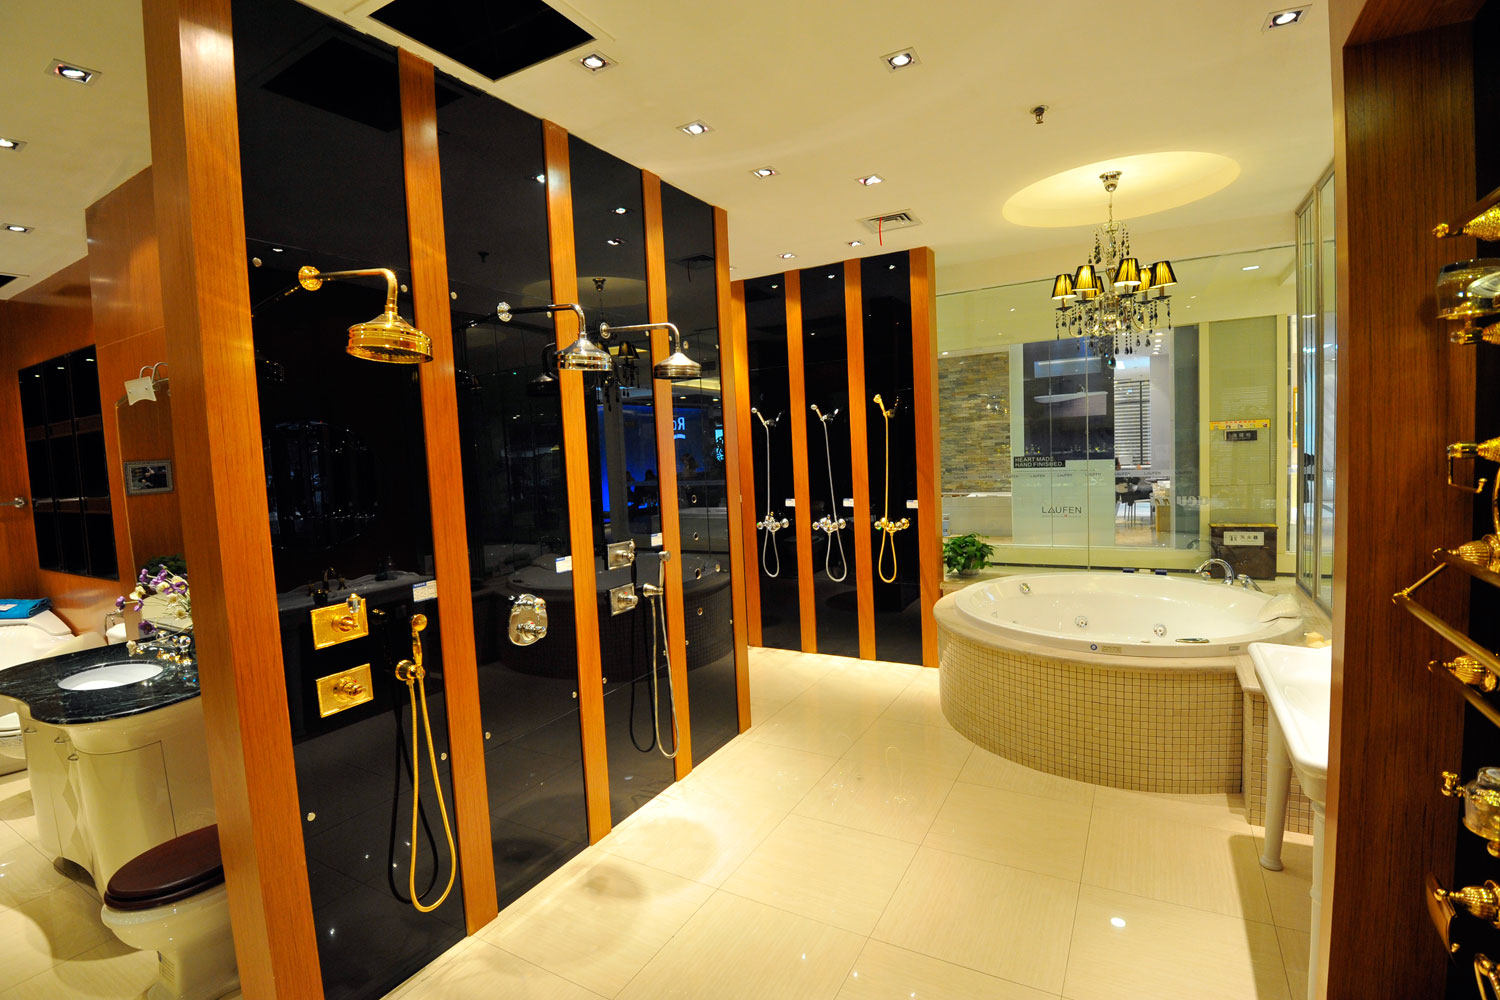 Impressive 25 luxury bathrooms fittings design ideas of luxury bathroom fittings bathroom Bathroom design and fitting wandsworth